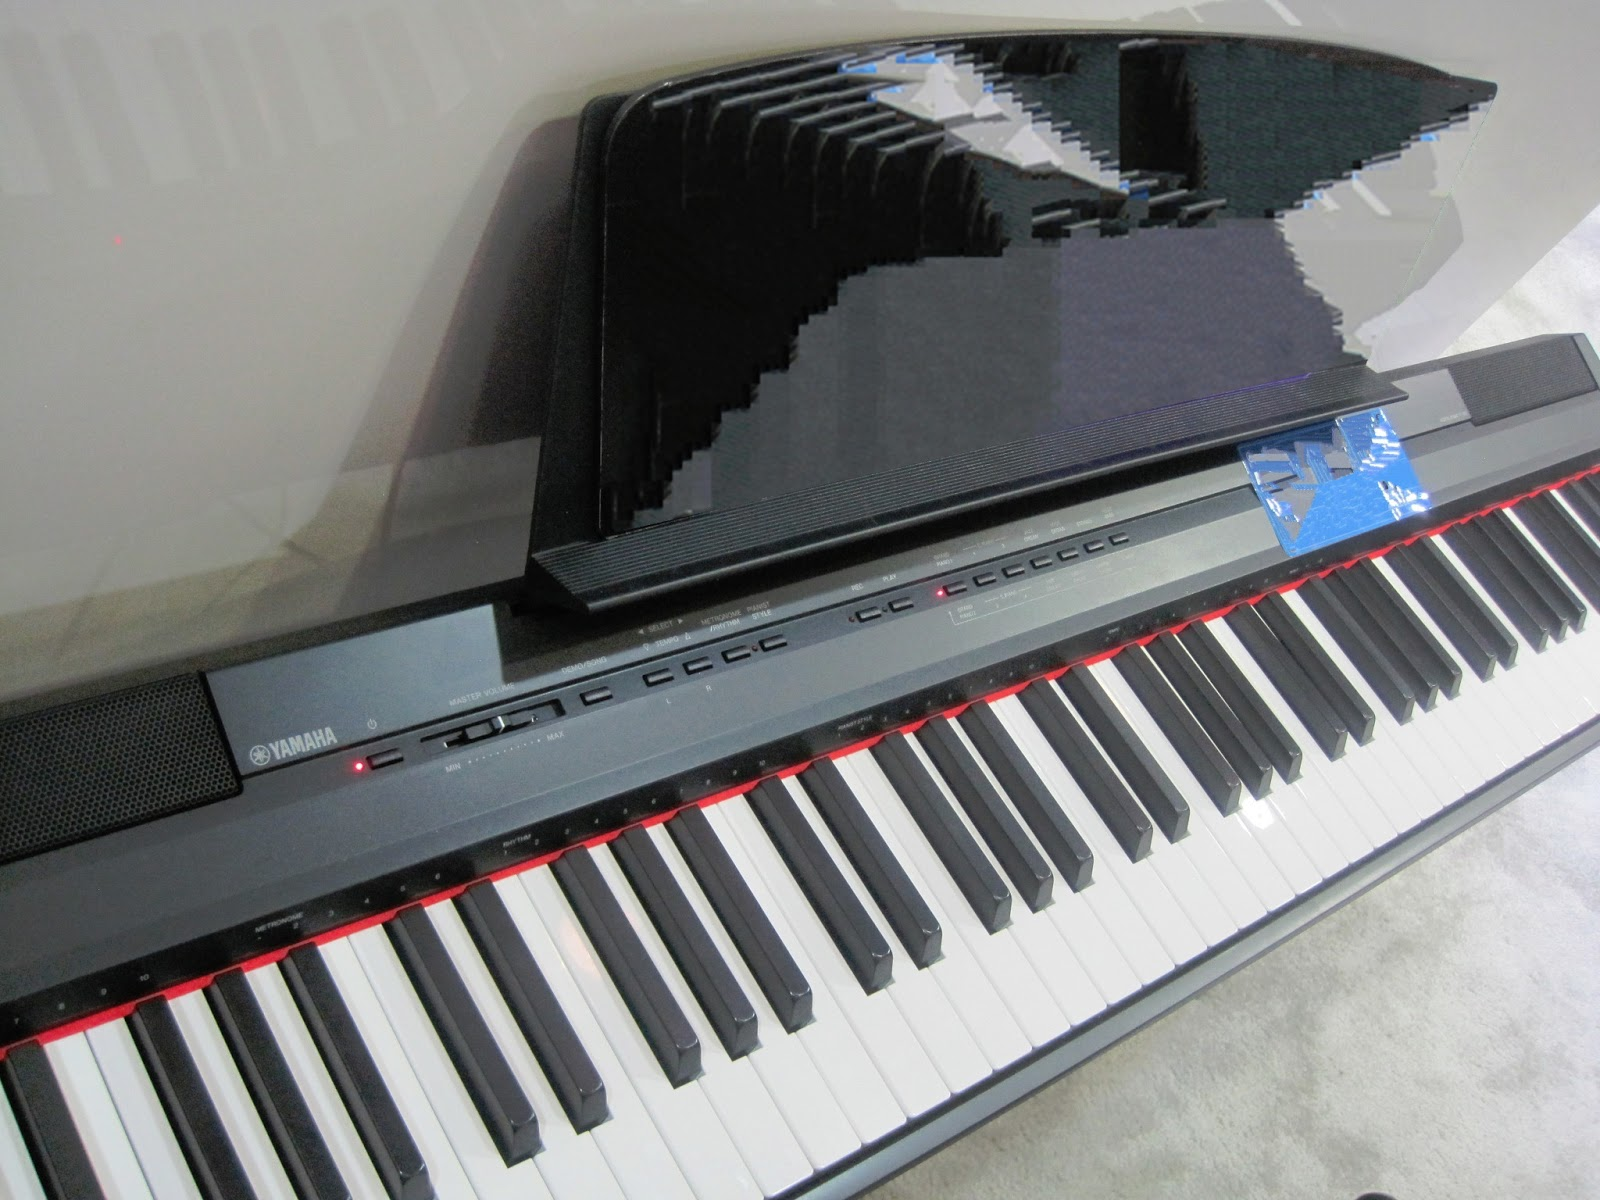 azpianonews review yamaha ydp142 ydp162 ydps51 digital pianos recommended very nice. Black Bedroom Furniture Sets. Home Design Ideas